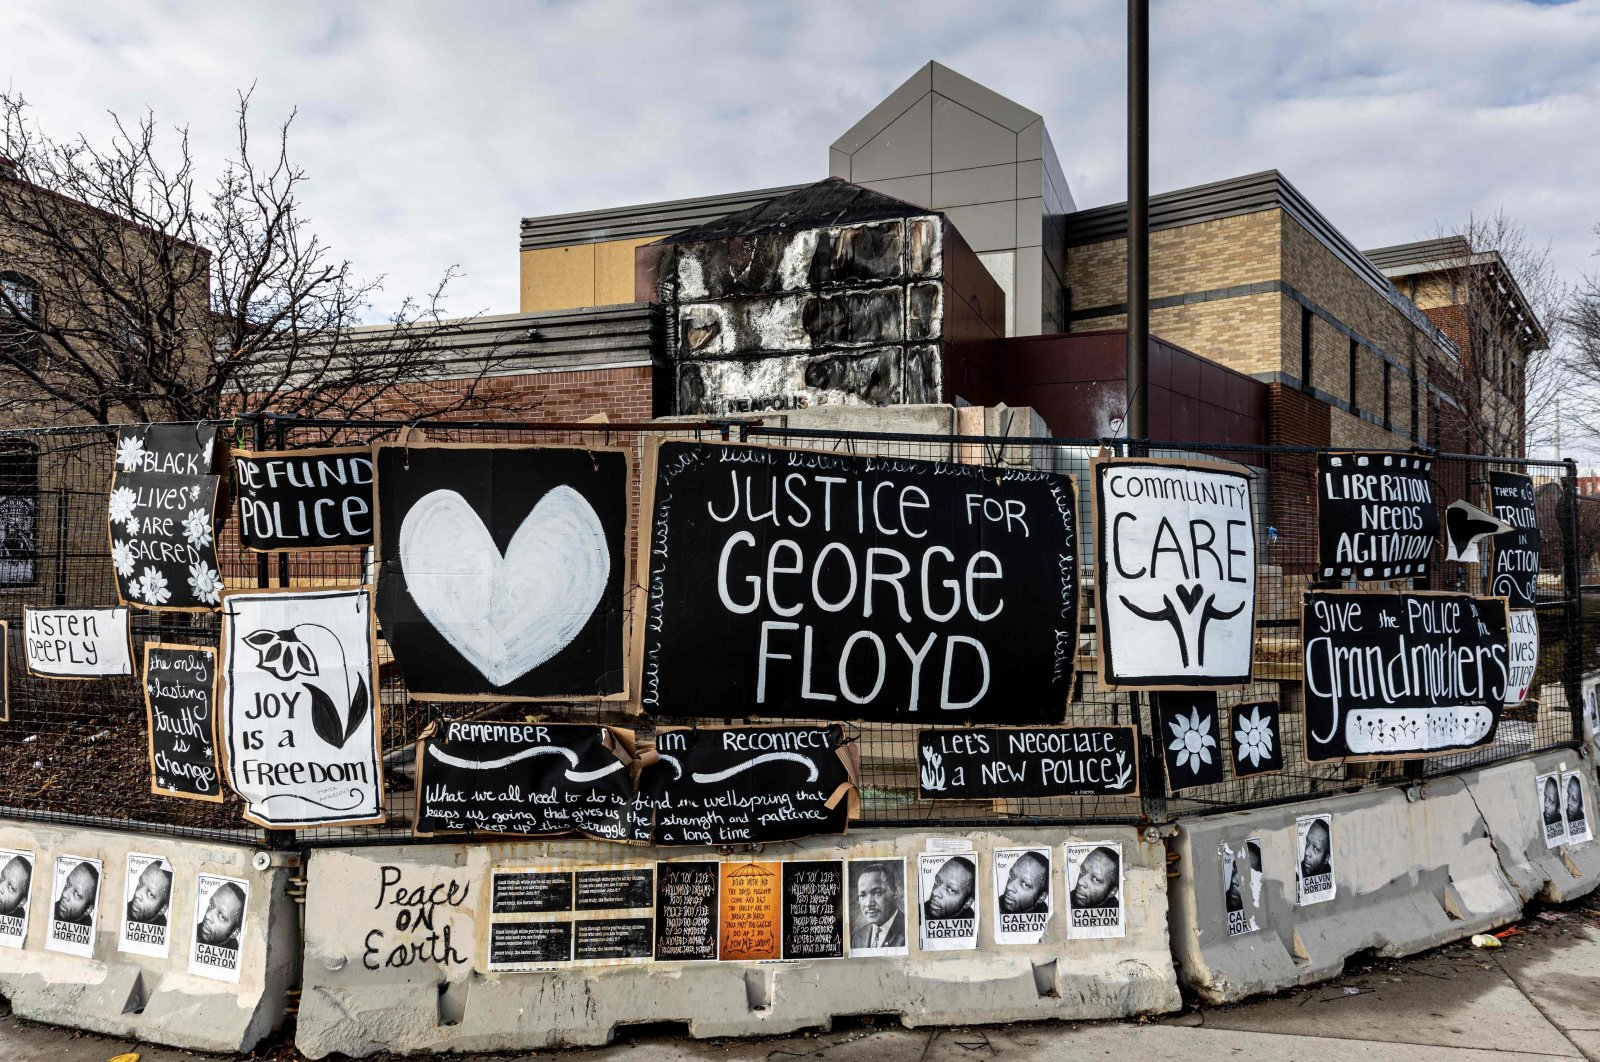 A general view of the burned and destroyed Third Police Precinct in Minneapolis which was burned in May 2020 during the protests after the death of George Floyd, Minnesota, U.S., March 11, 2021. (AFP Photo)